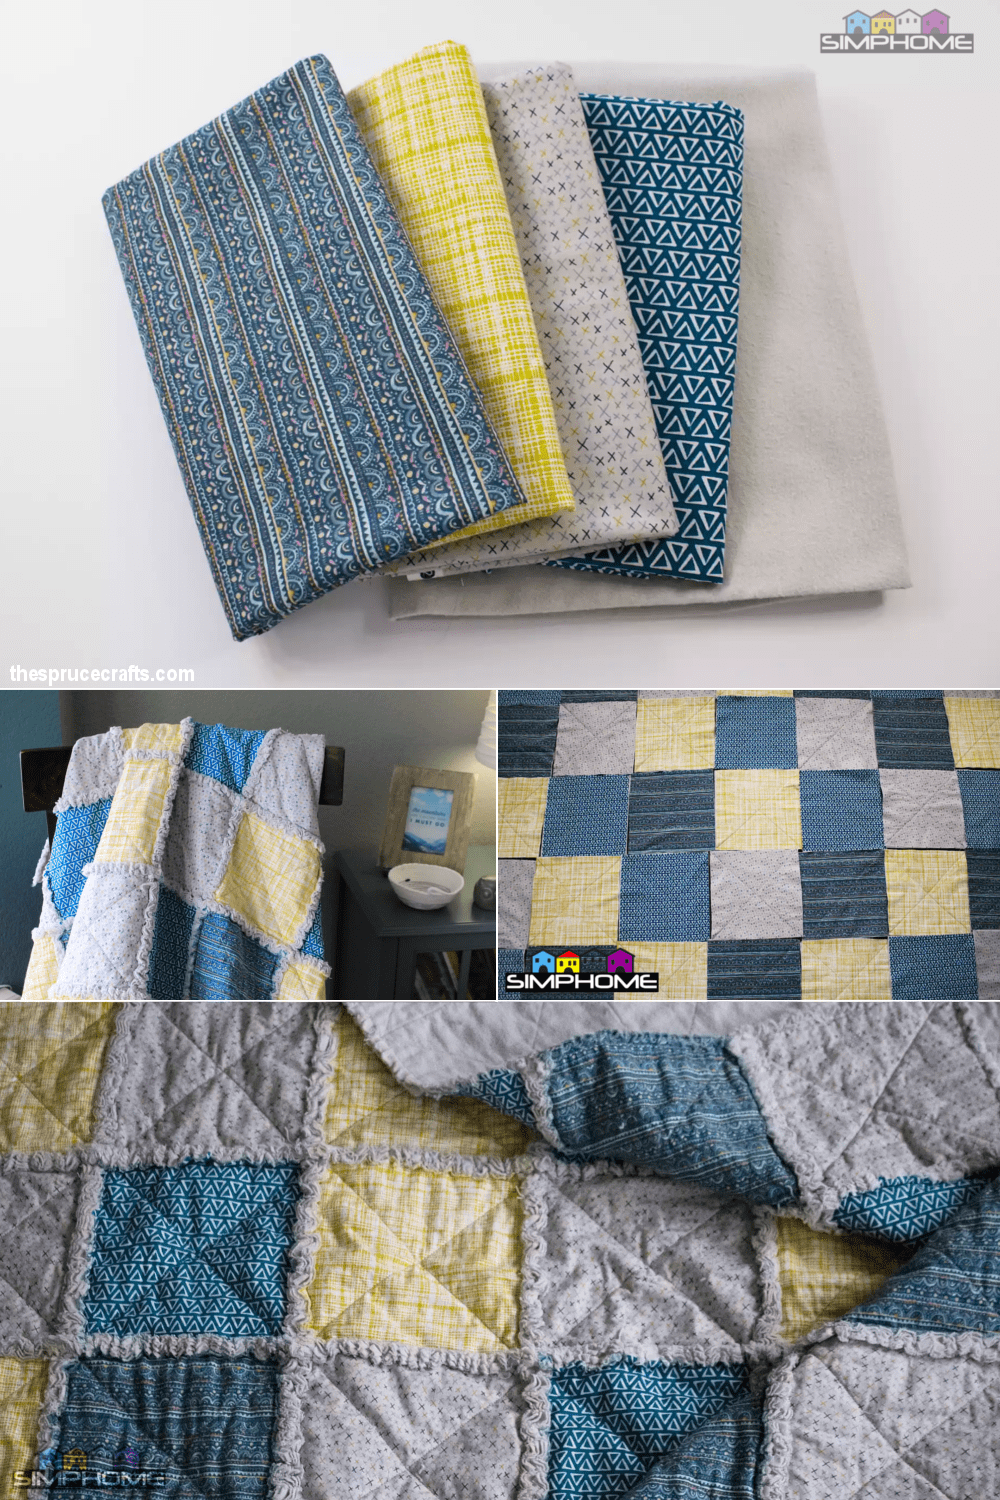 4.Patchwork Styling comforter project via simphome.com